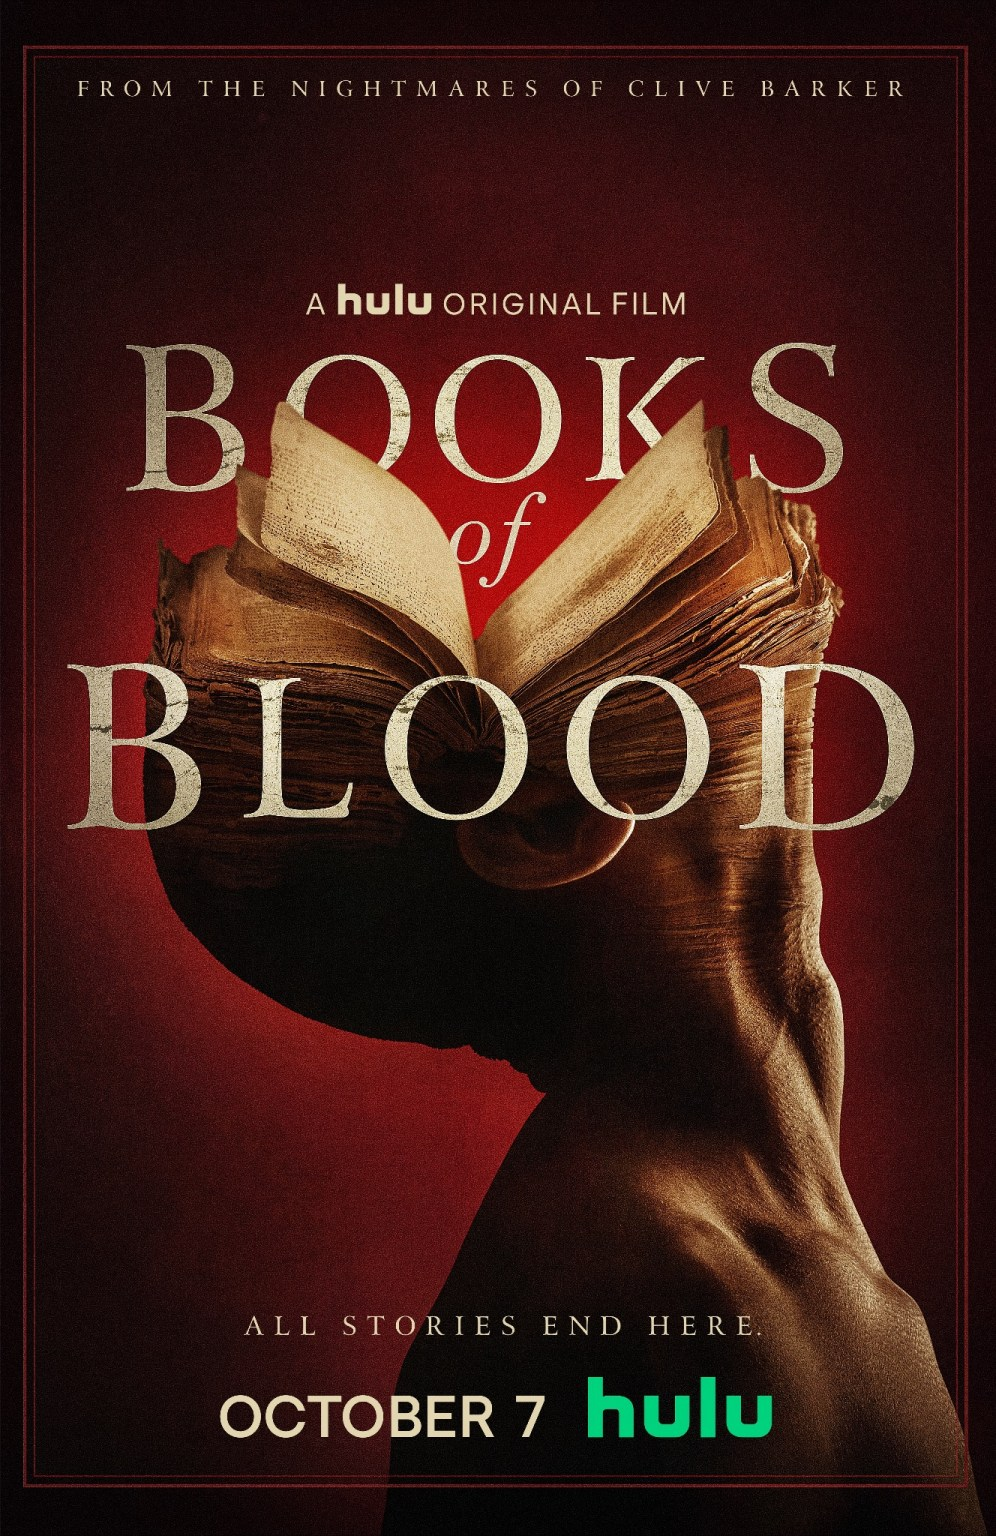 Clive Barker Serie Books Of Blood Livresdesang Hulu 02 Poster